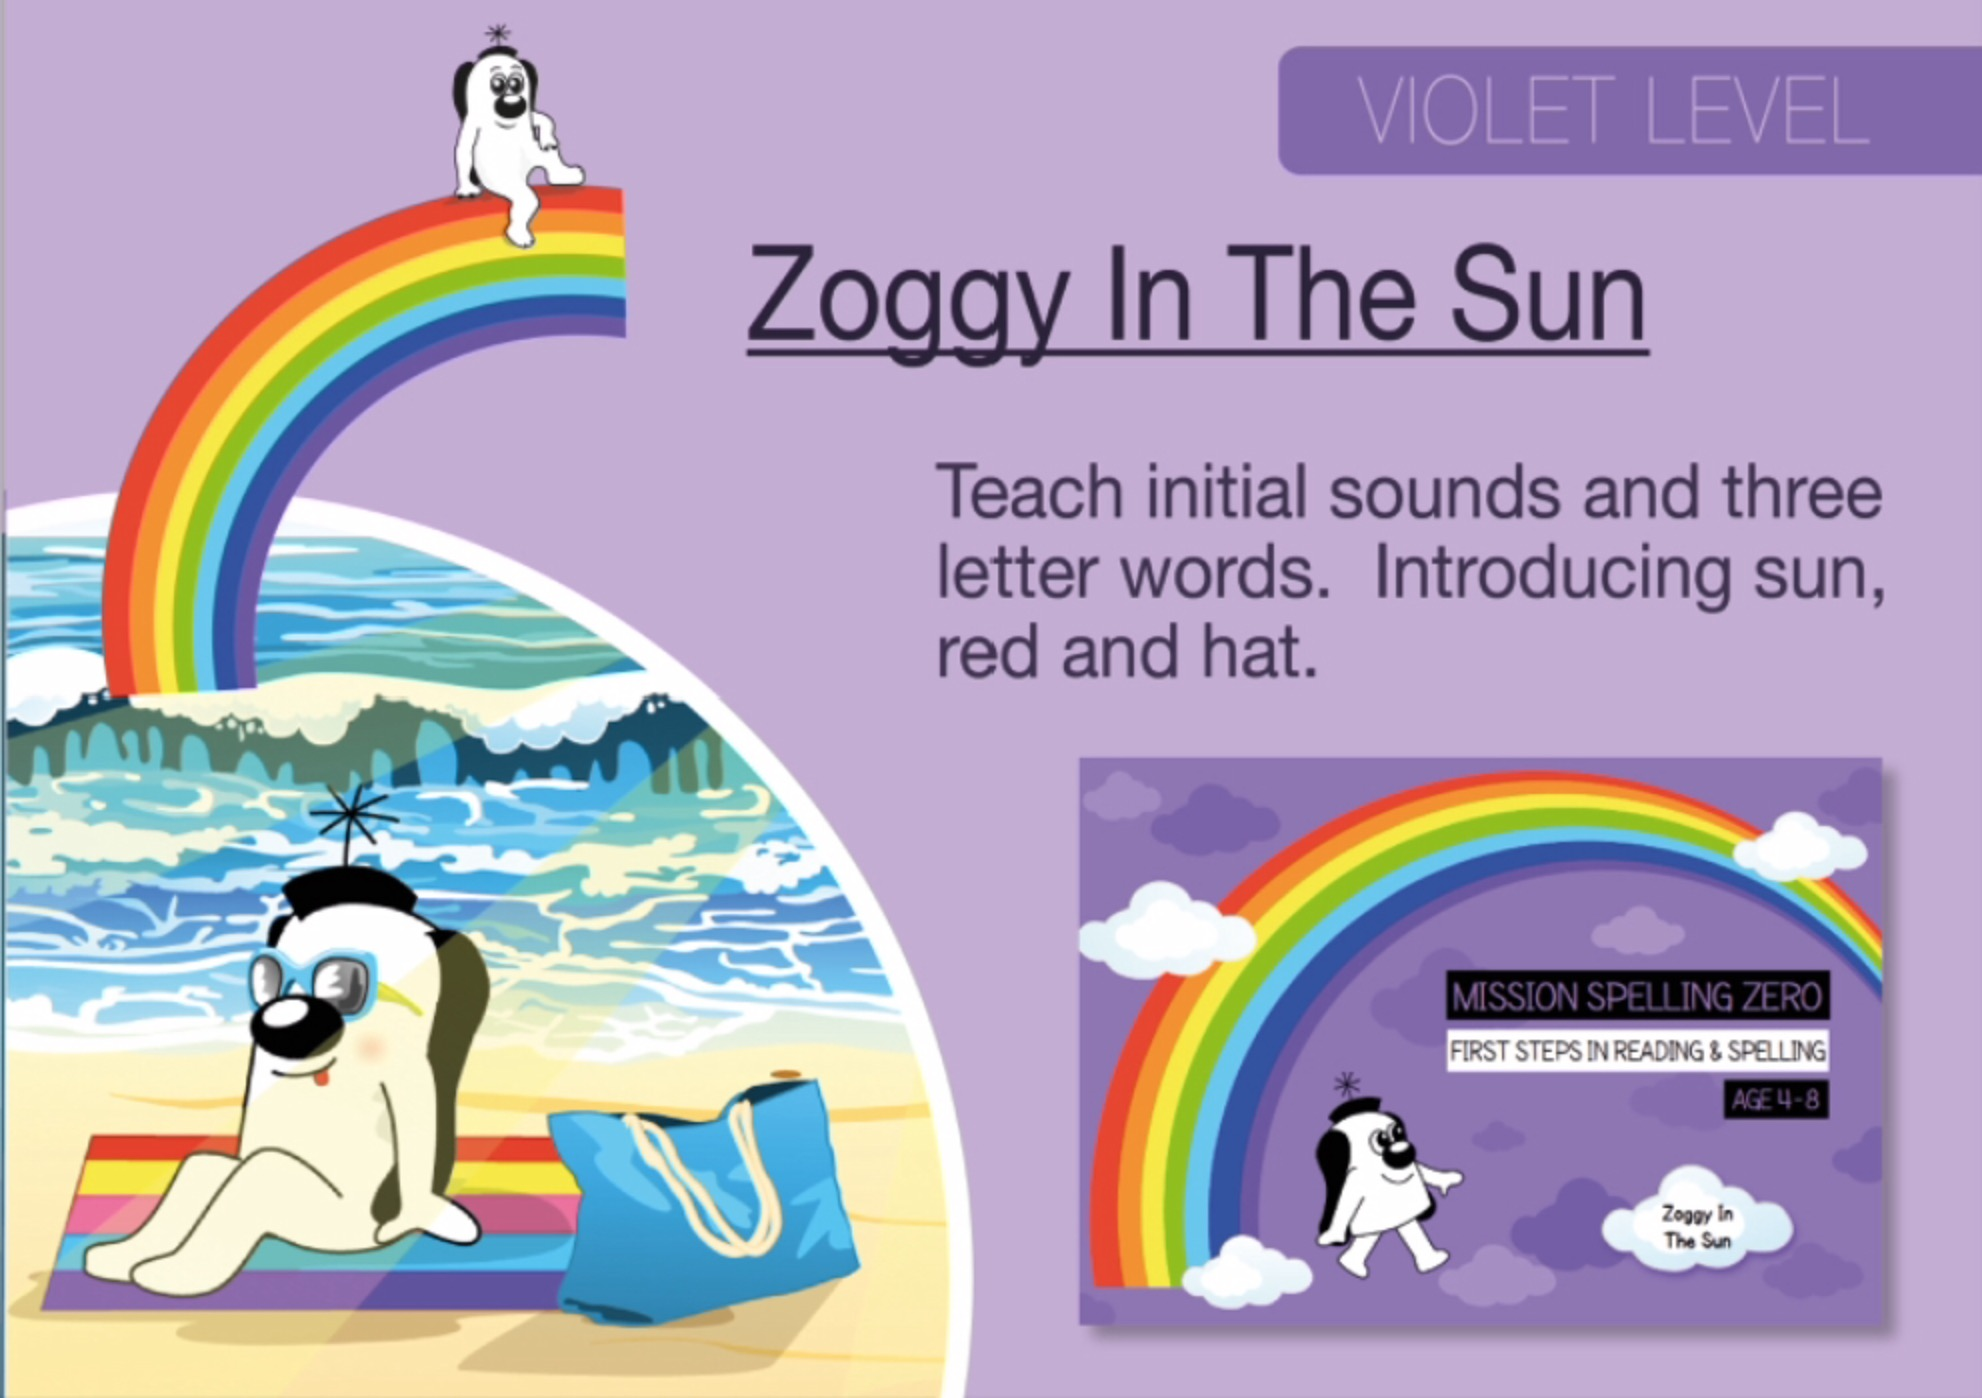 Initial Sounds And Three Letter Words (Zoggy In The Sun)